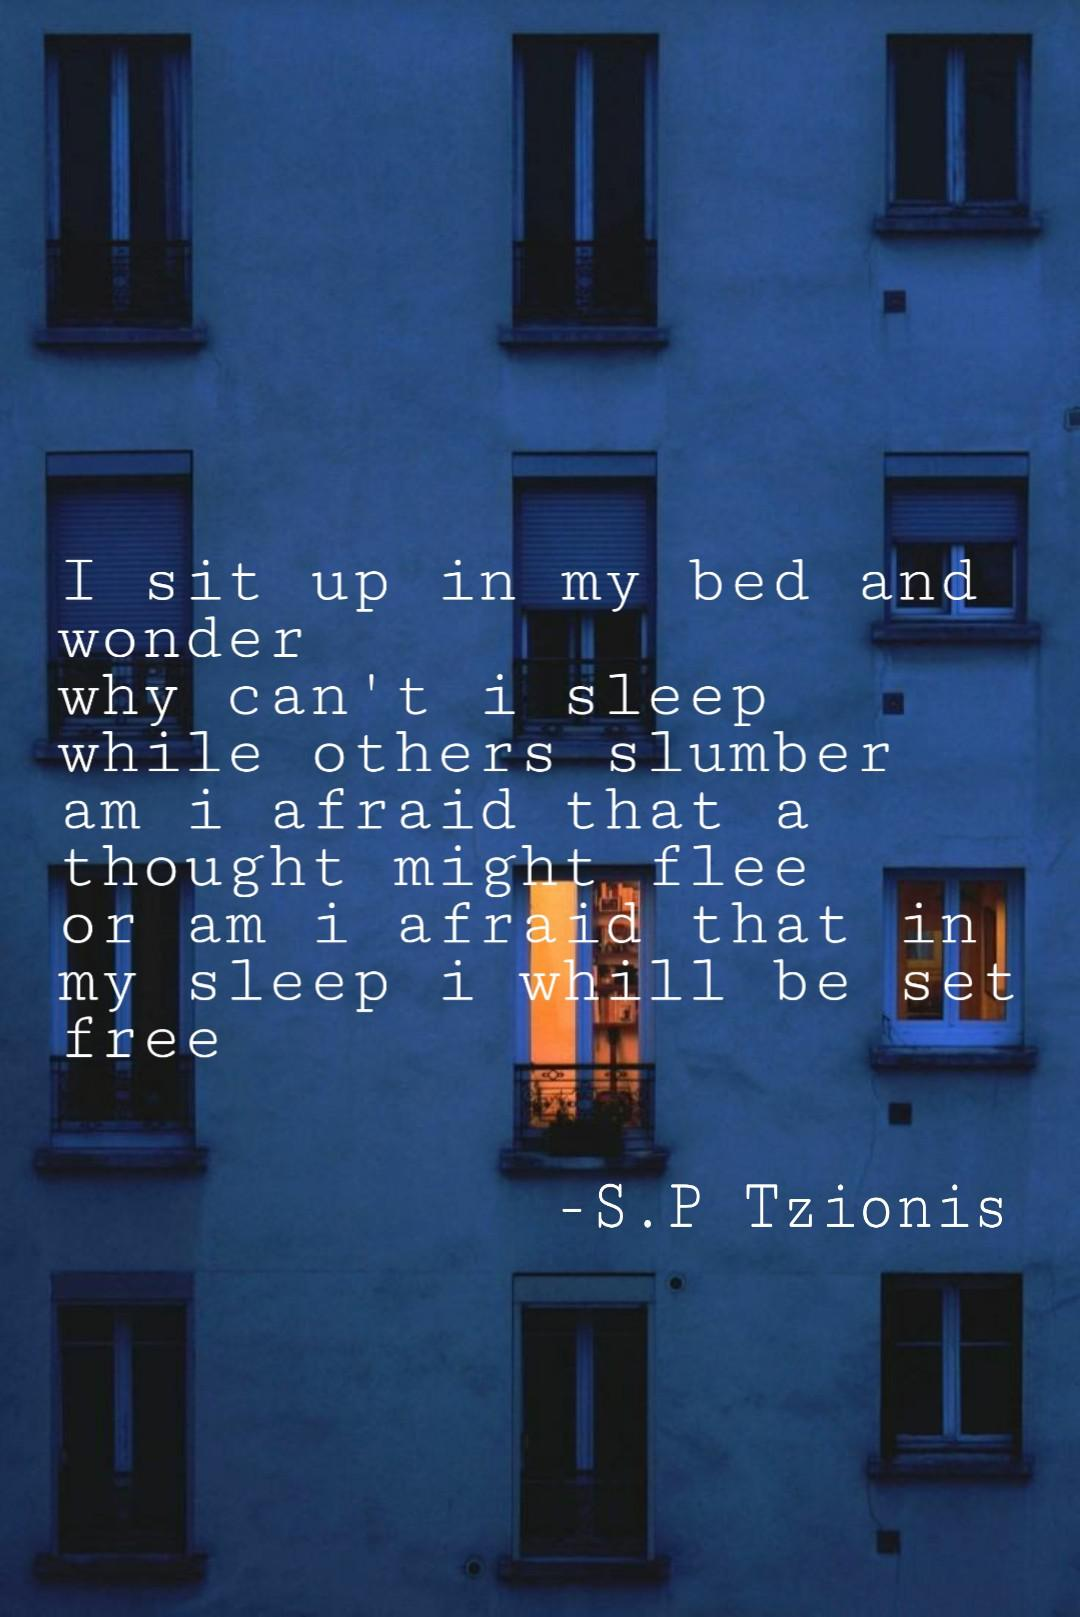 """I sit up in my bed and wonder, why can't I sleep while others slumber,am I afraid that a thought might flee, or am I afraid that in my sleep I will be set free"" -S.PTzionis [1080×1617]"